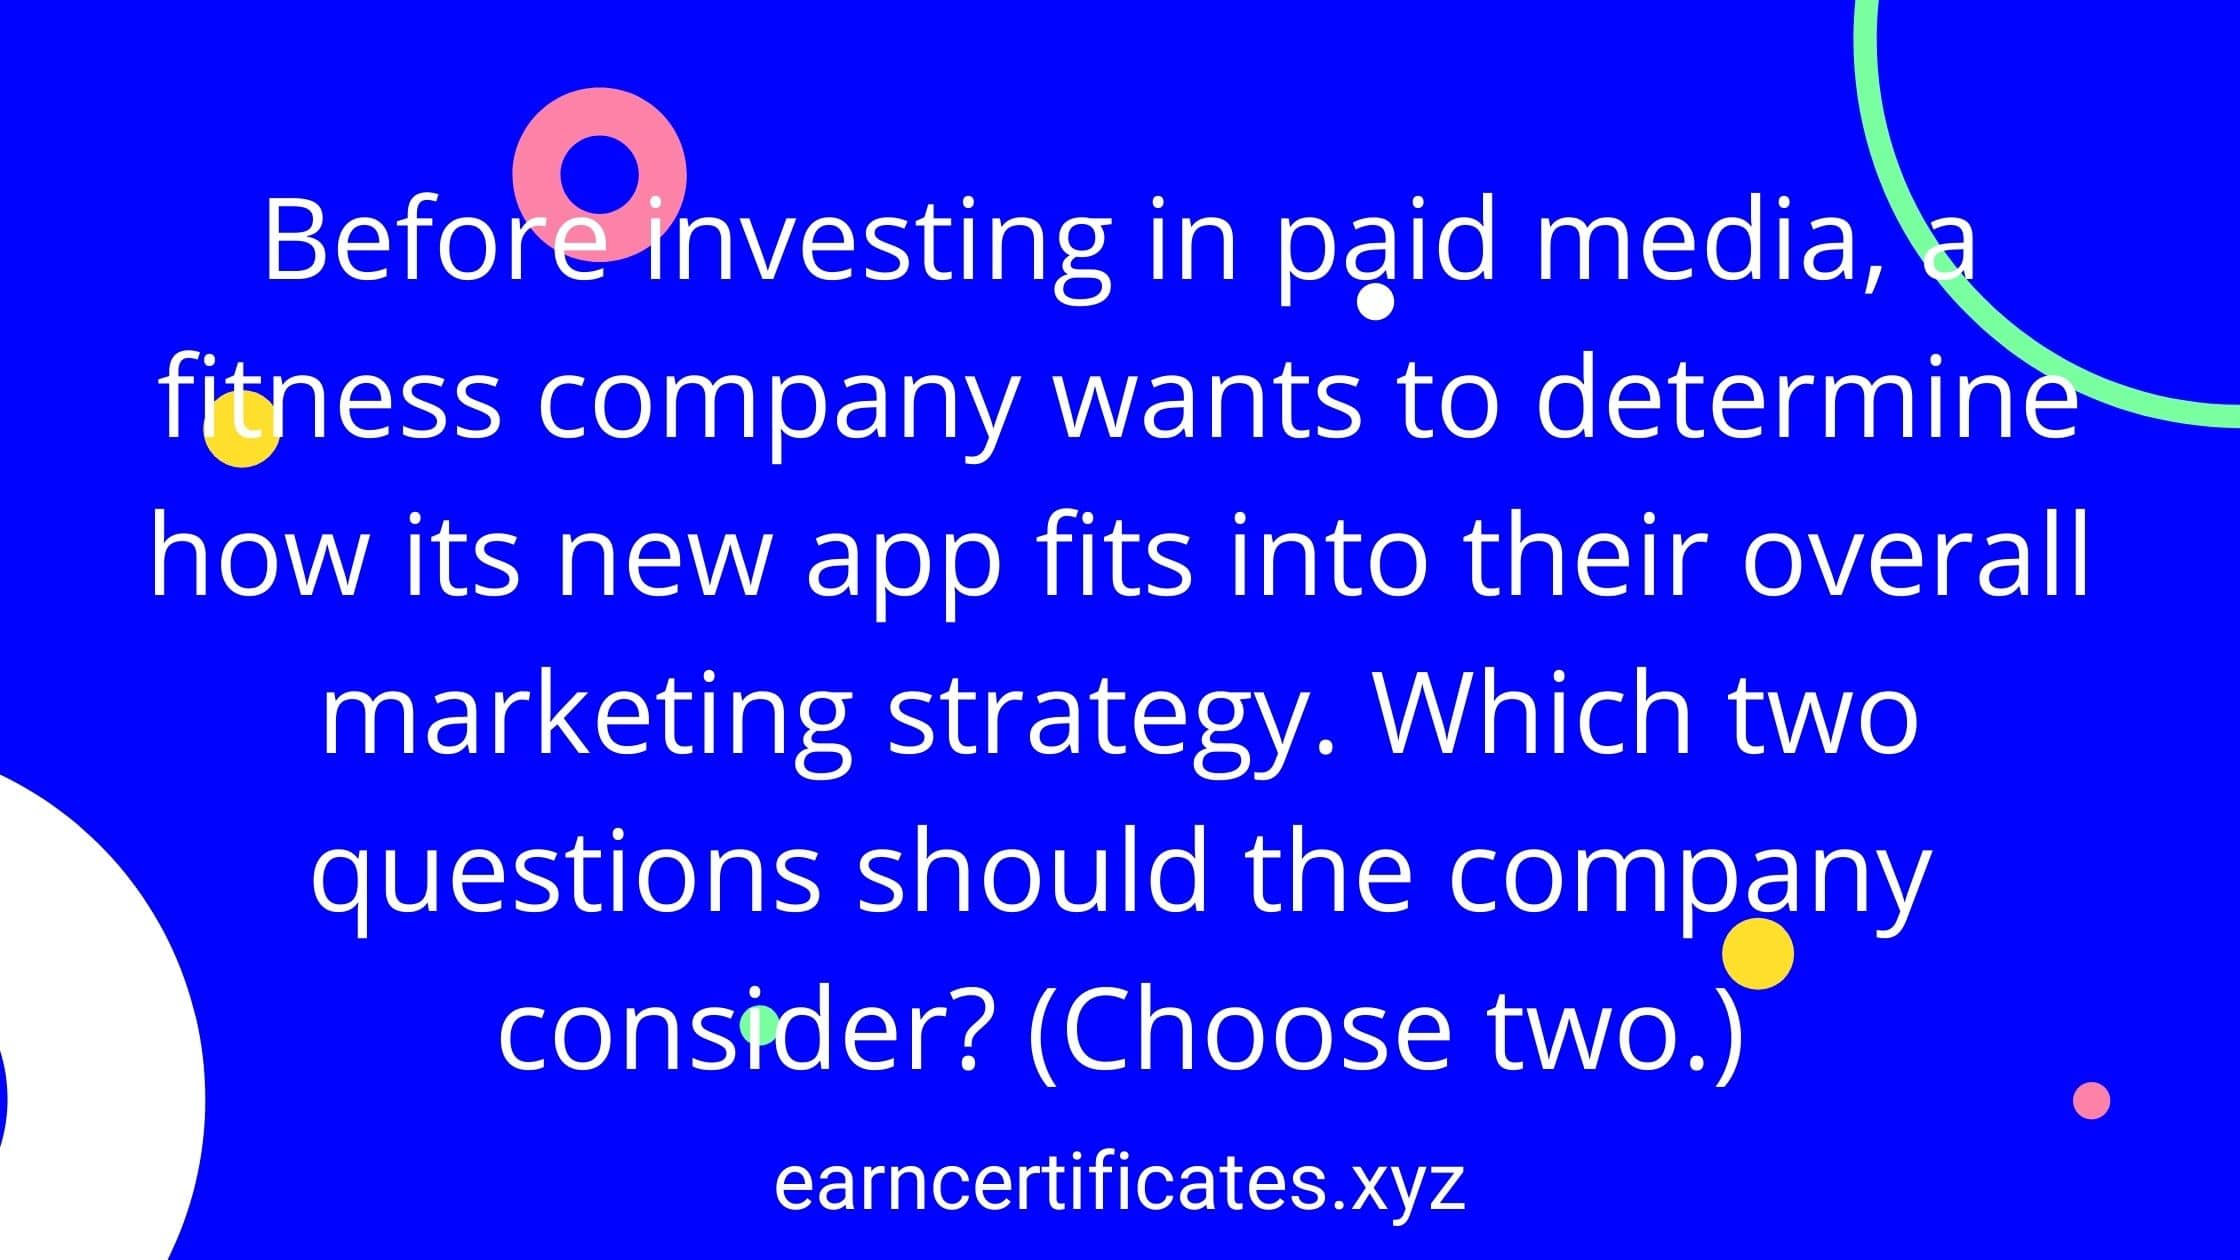 Before investing in paid media, a fitness company wants to determine how its new app fits into their overall marketing strategy. Which two questions should the company consider? (Choose two.)